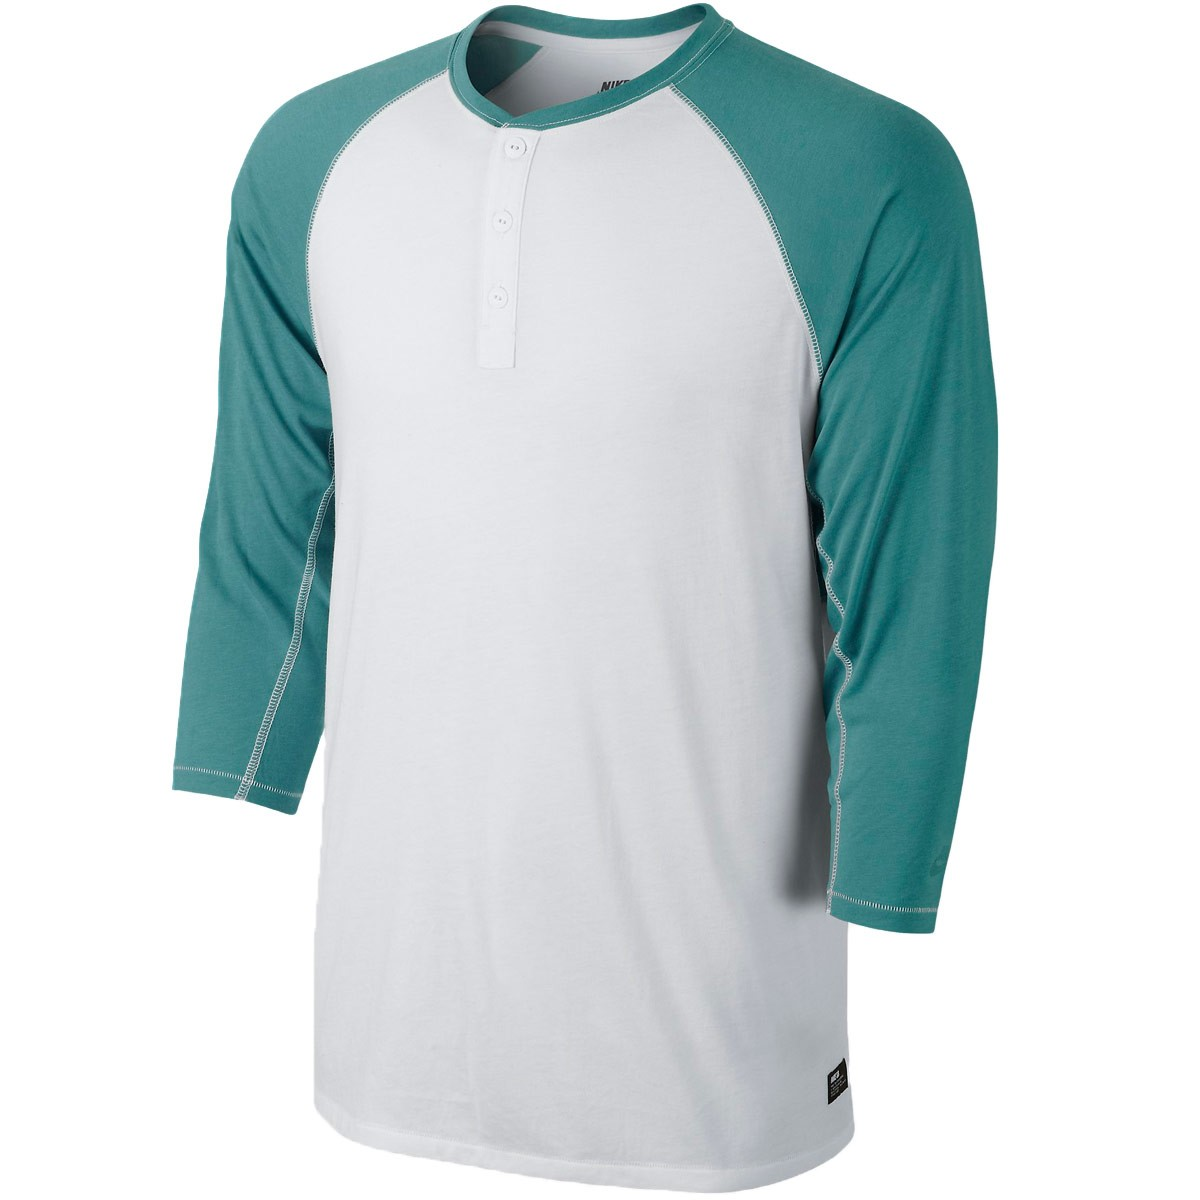 d5672f89 nike-sb-dry-fit-3-4-sleeve-henley-t-shirt-white-catalina_5.1506840844.jpg